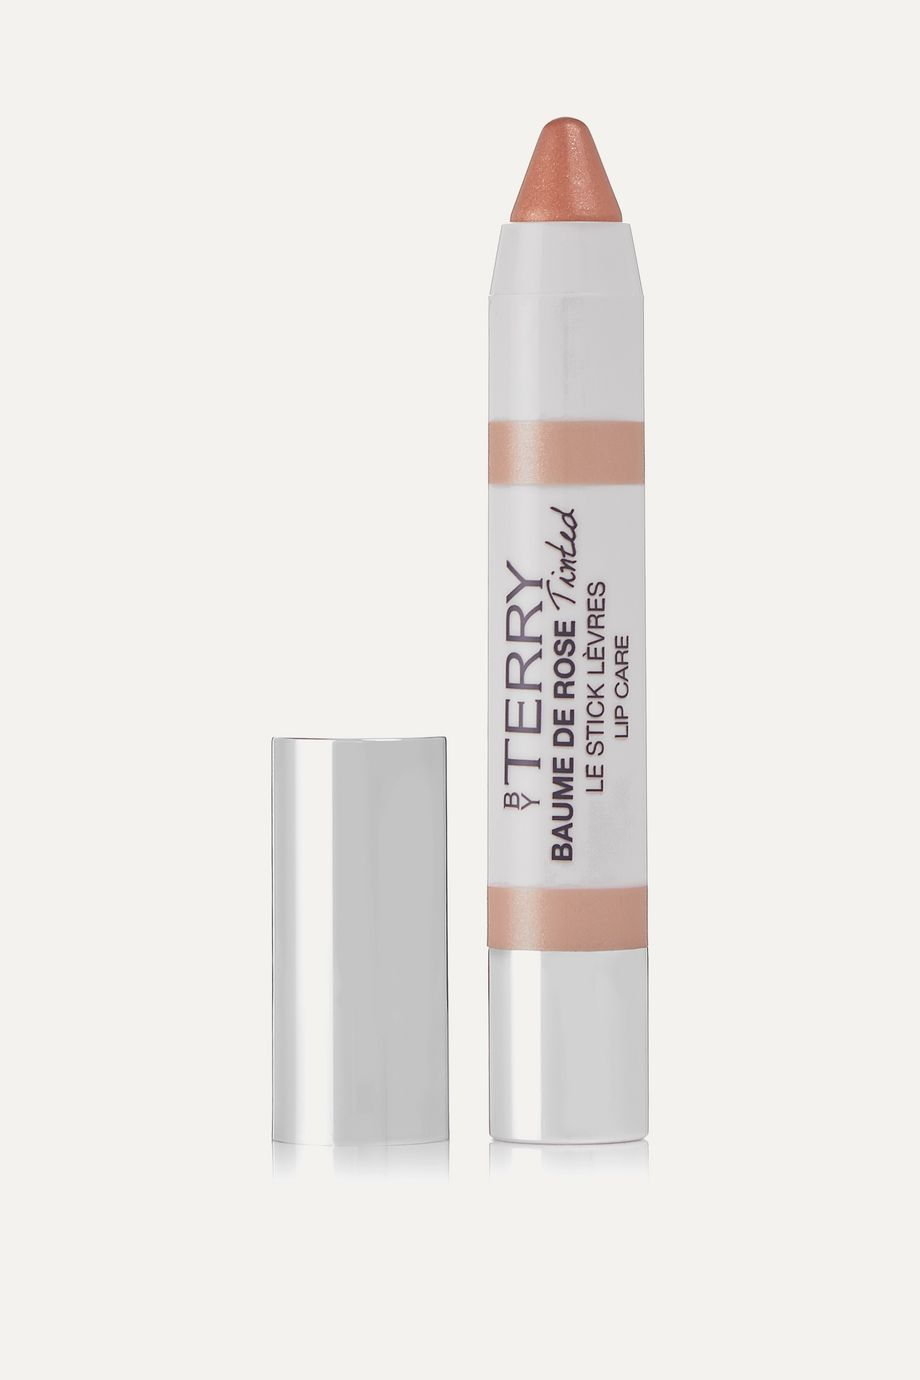 BY TERRY Baume de Rose Tinted Lip Care - Sunny Nude No.2